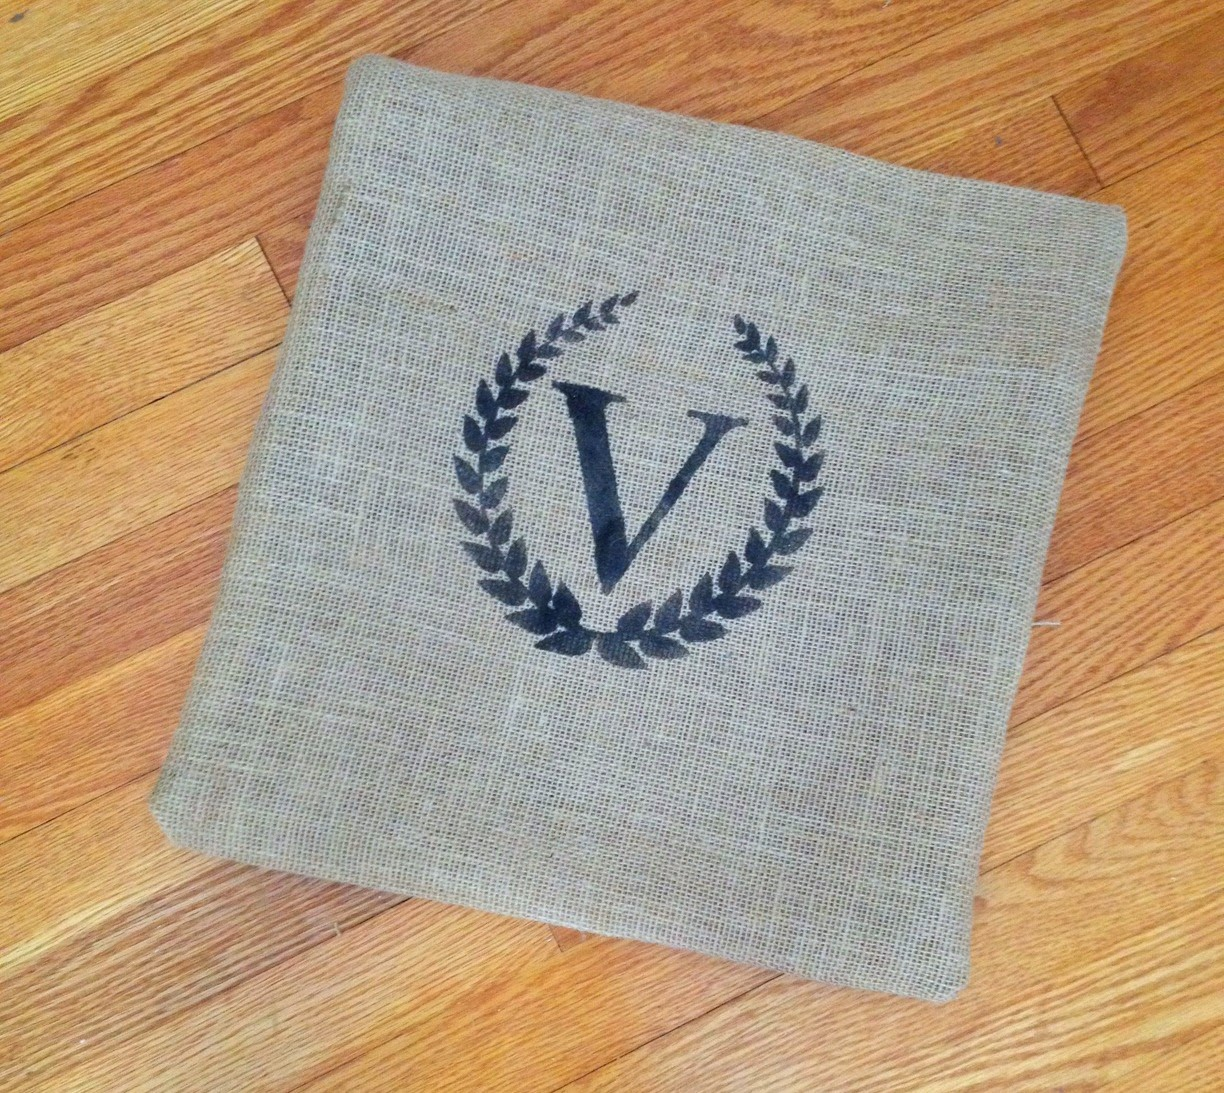 Projects, vinyl, wasting, 1 cut, pillow case, burlap